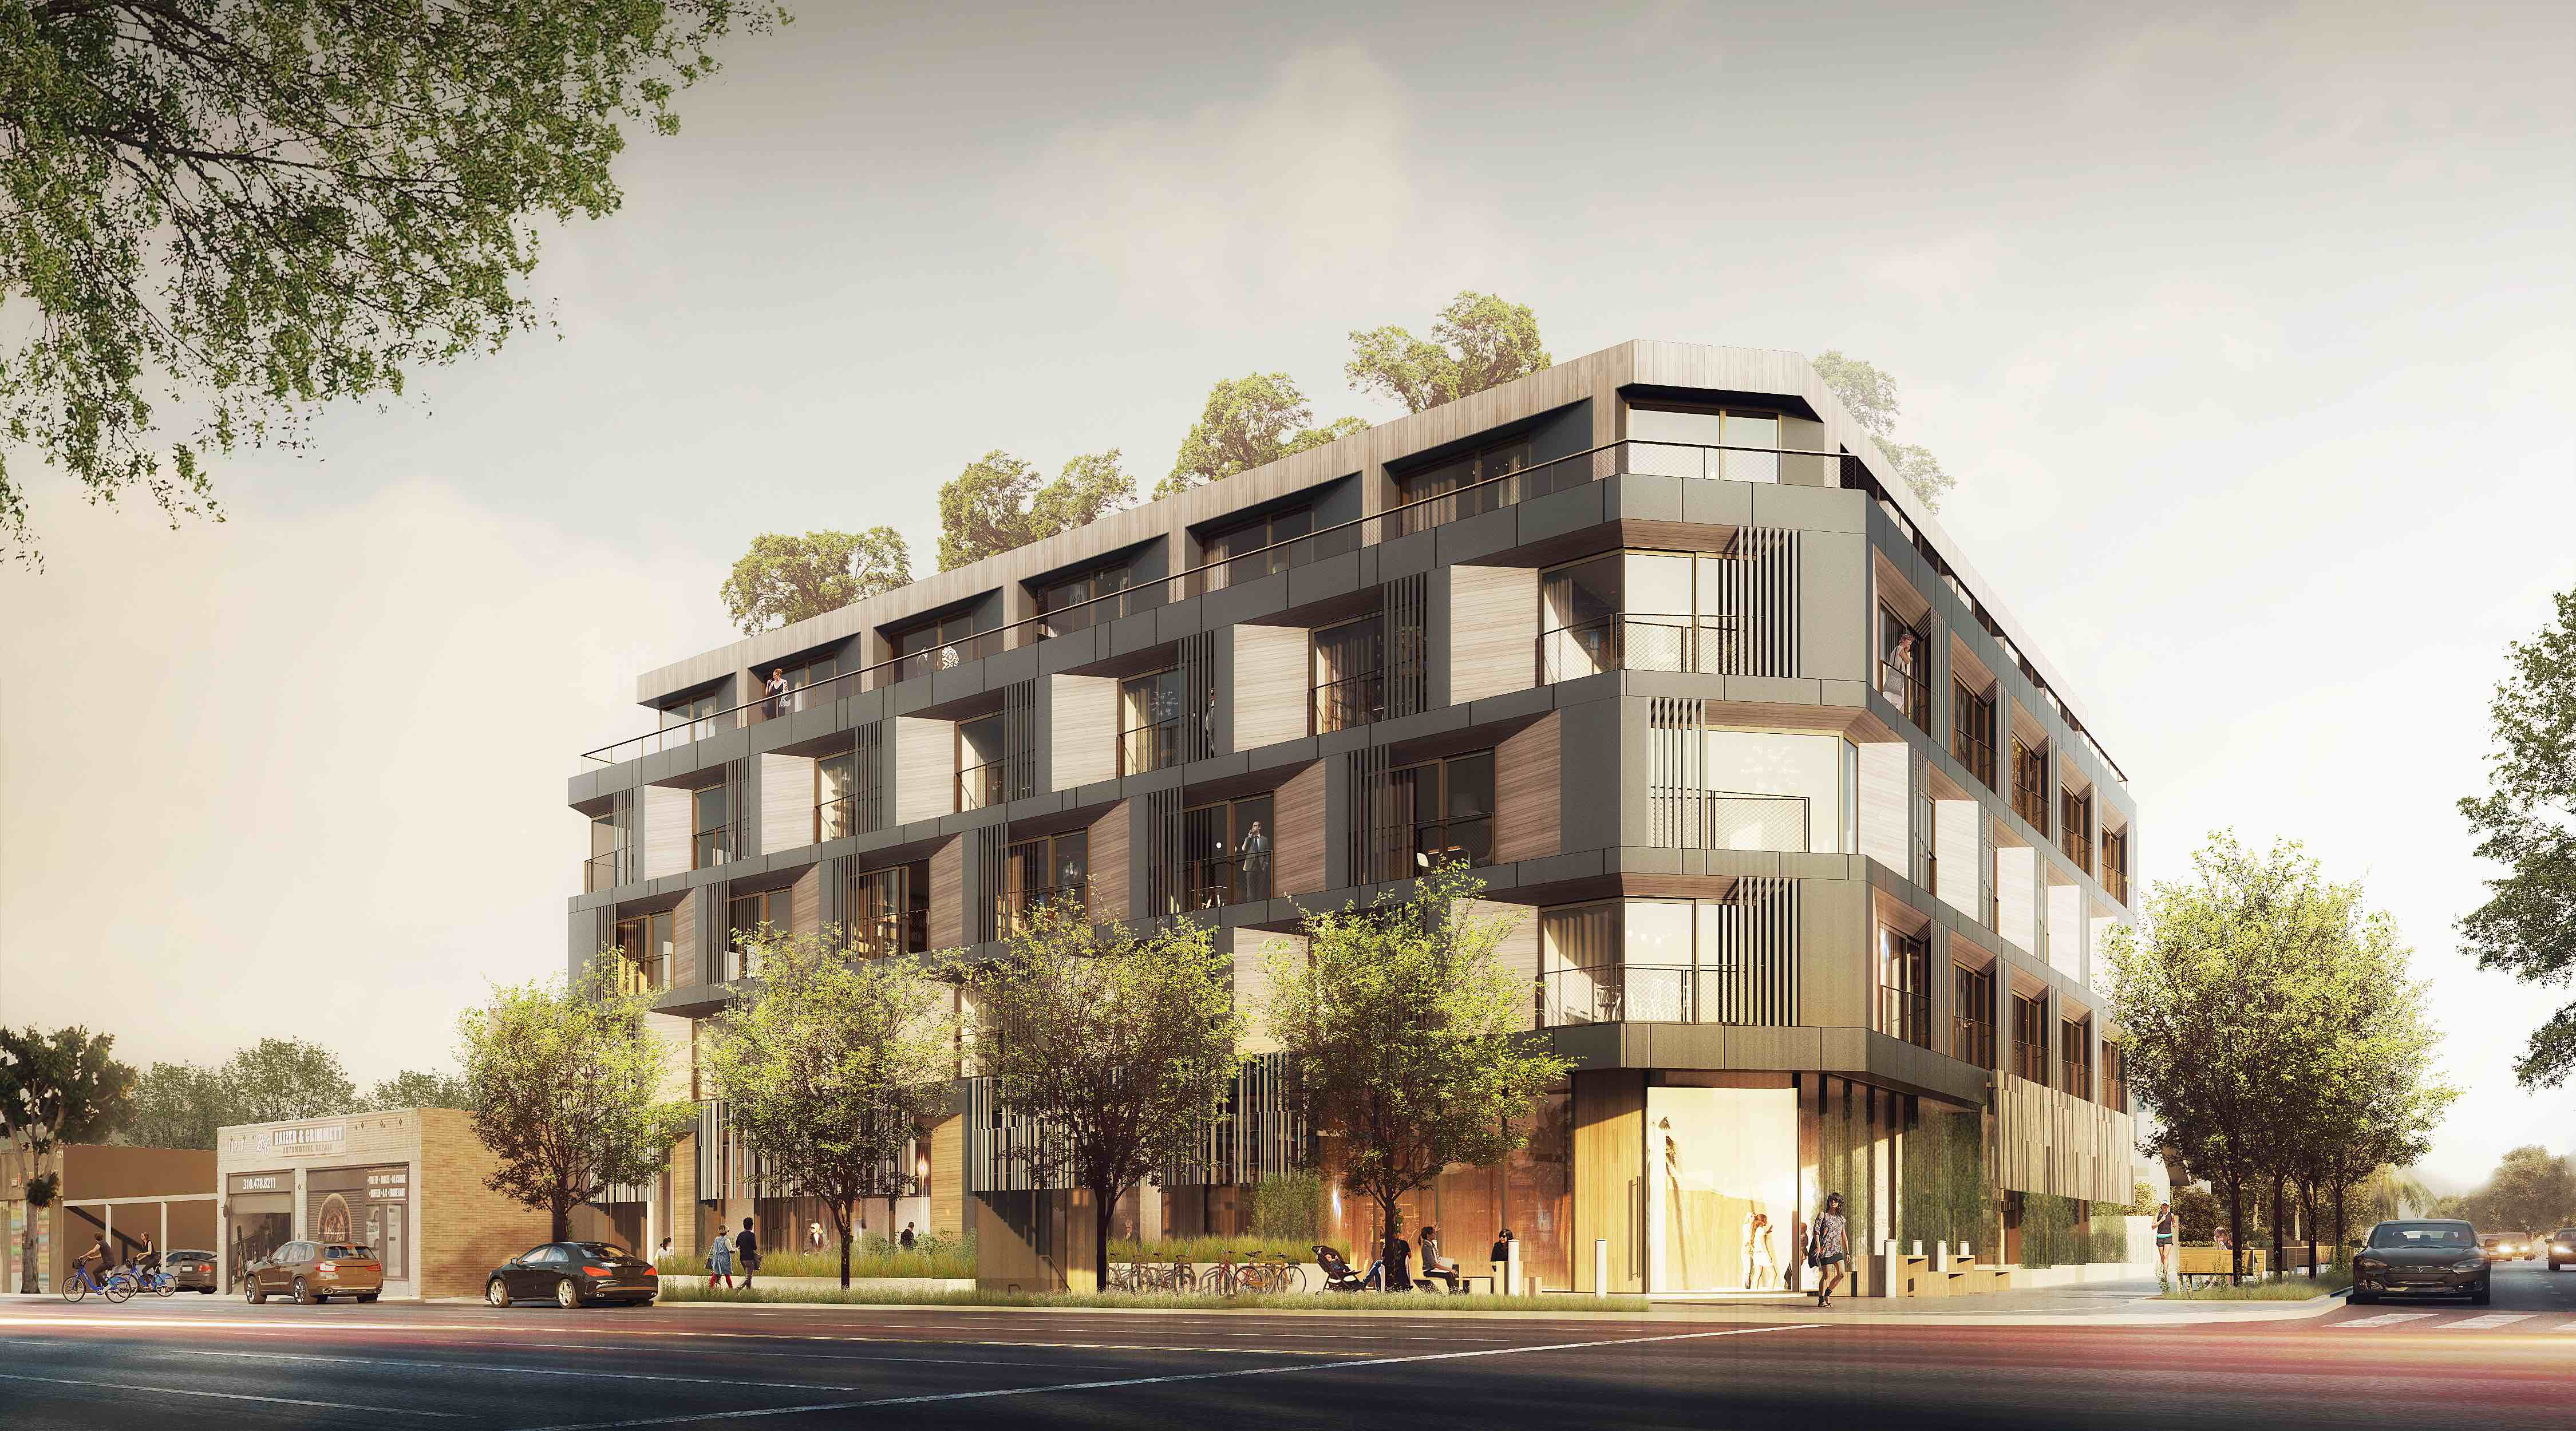 Home Design Story Cheats For Coins Five Story Apartment Project With Automated Parking On The